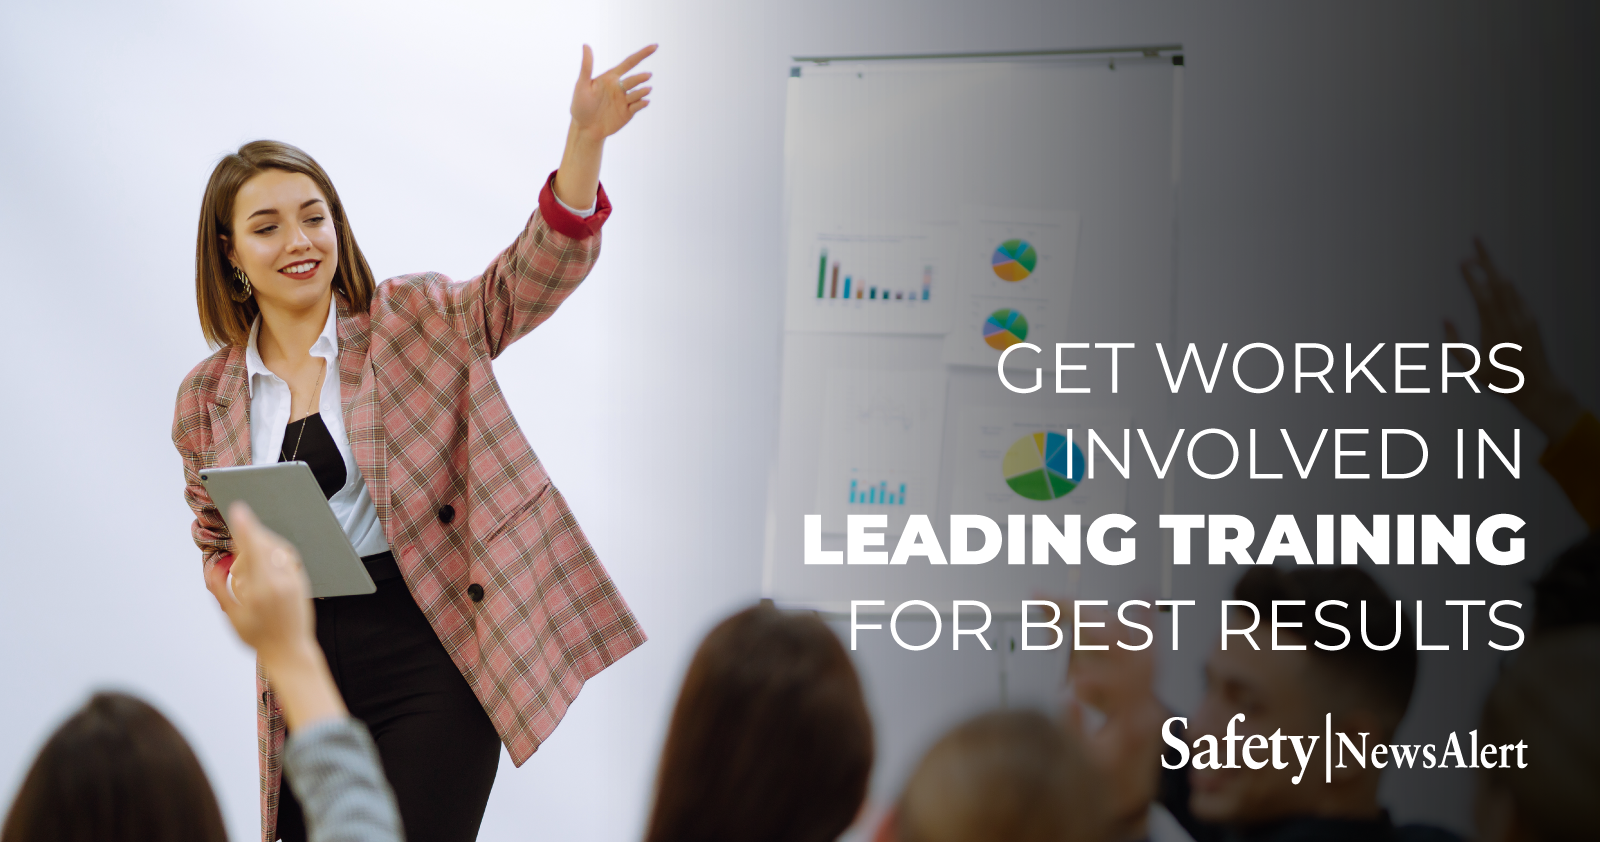 Get Workers Involved In Leading Training for Best Results